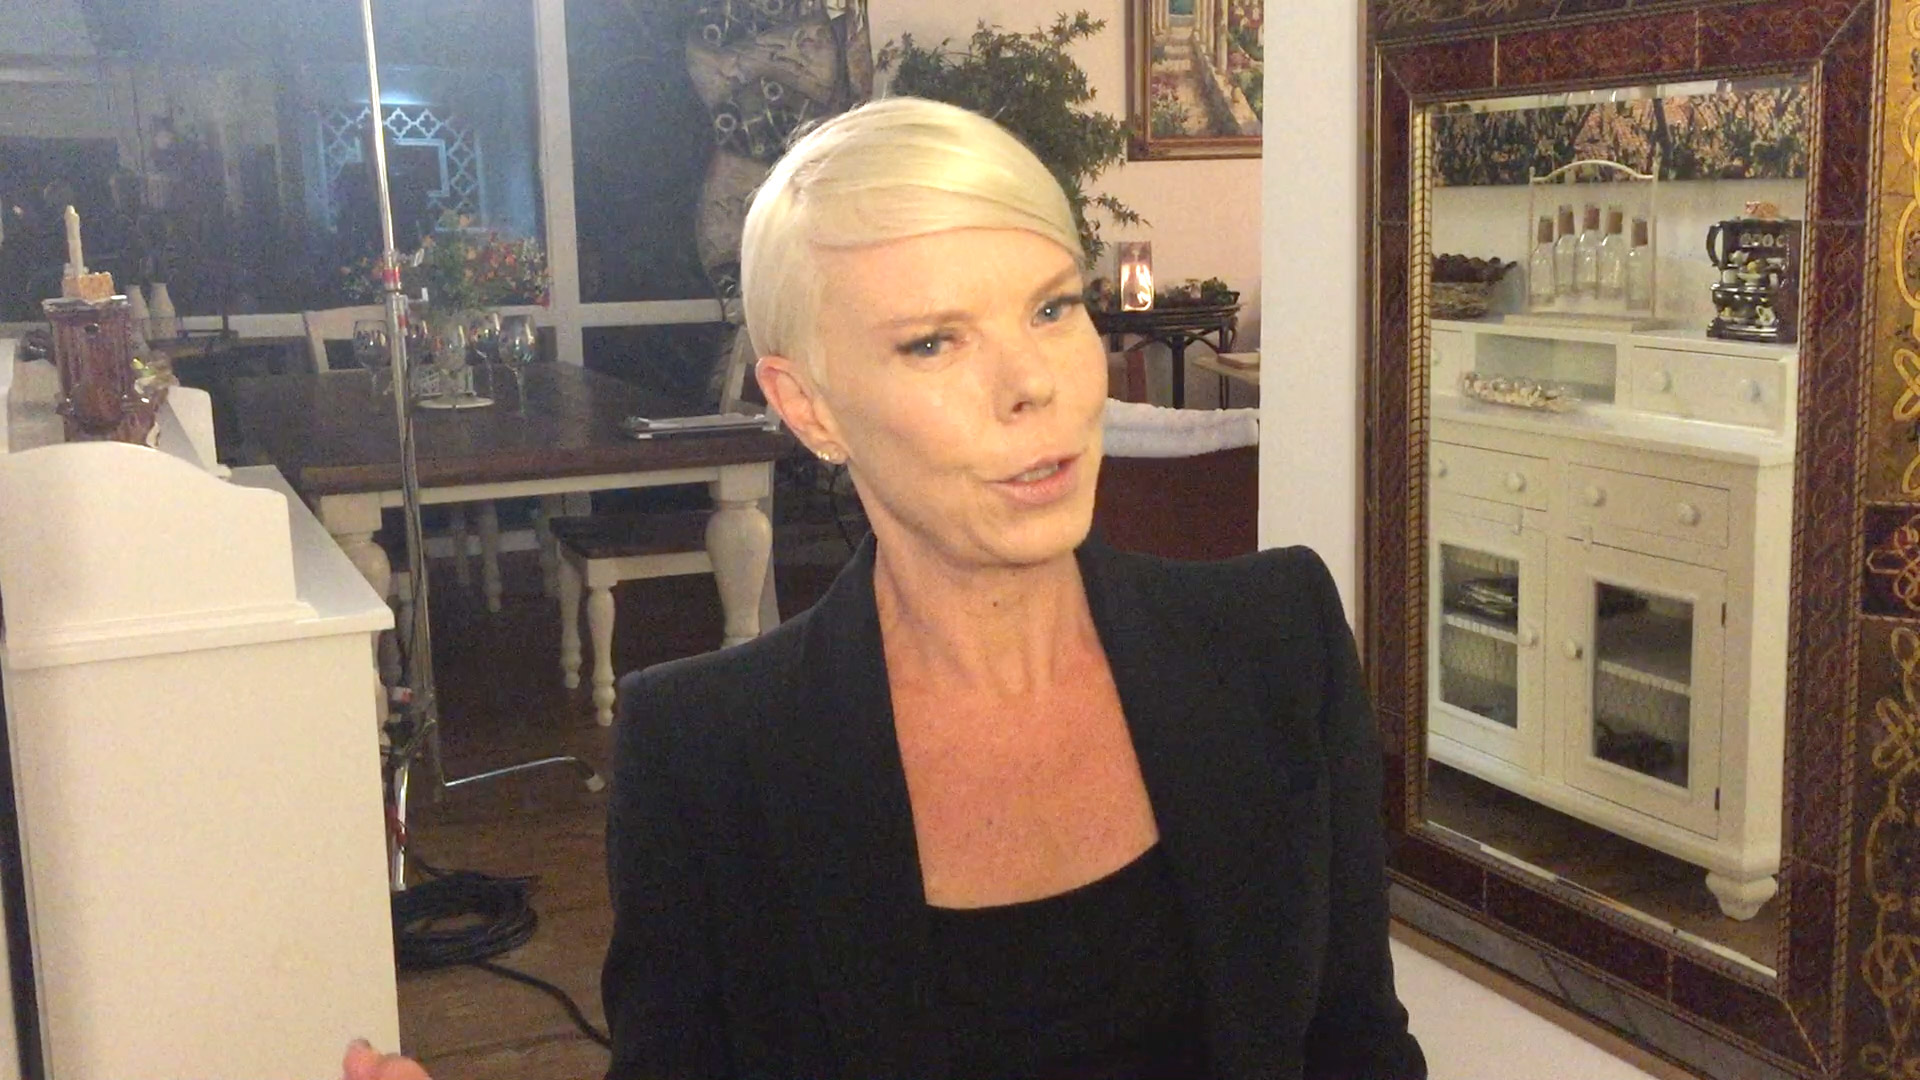 Hear Tabatha Coffey's First Impressions of the D'Amore Family